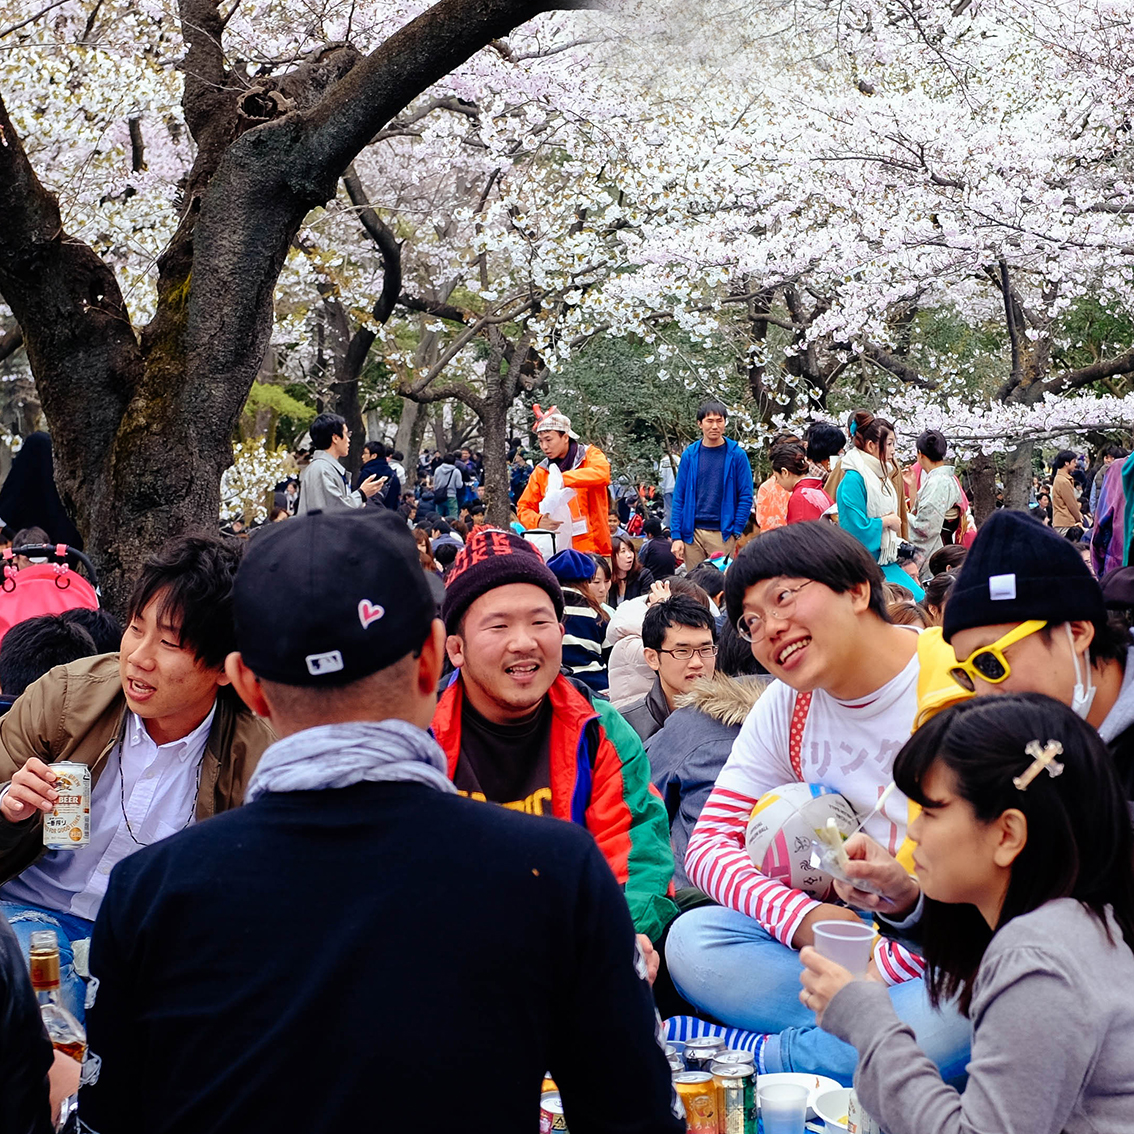 Cutest Hanami Dude Ever!